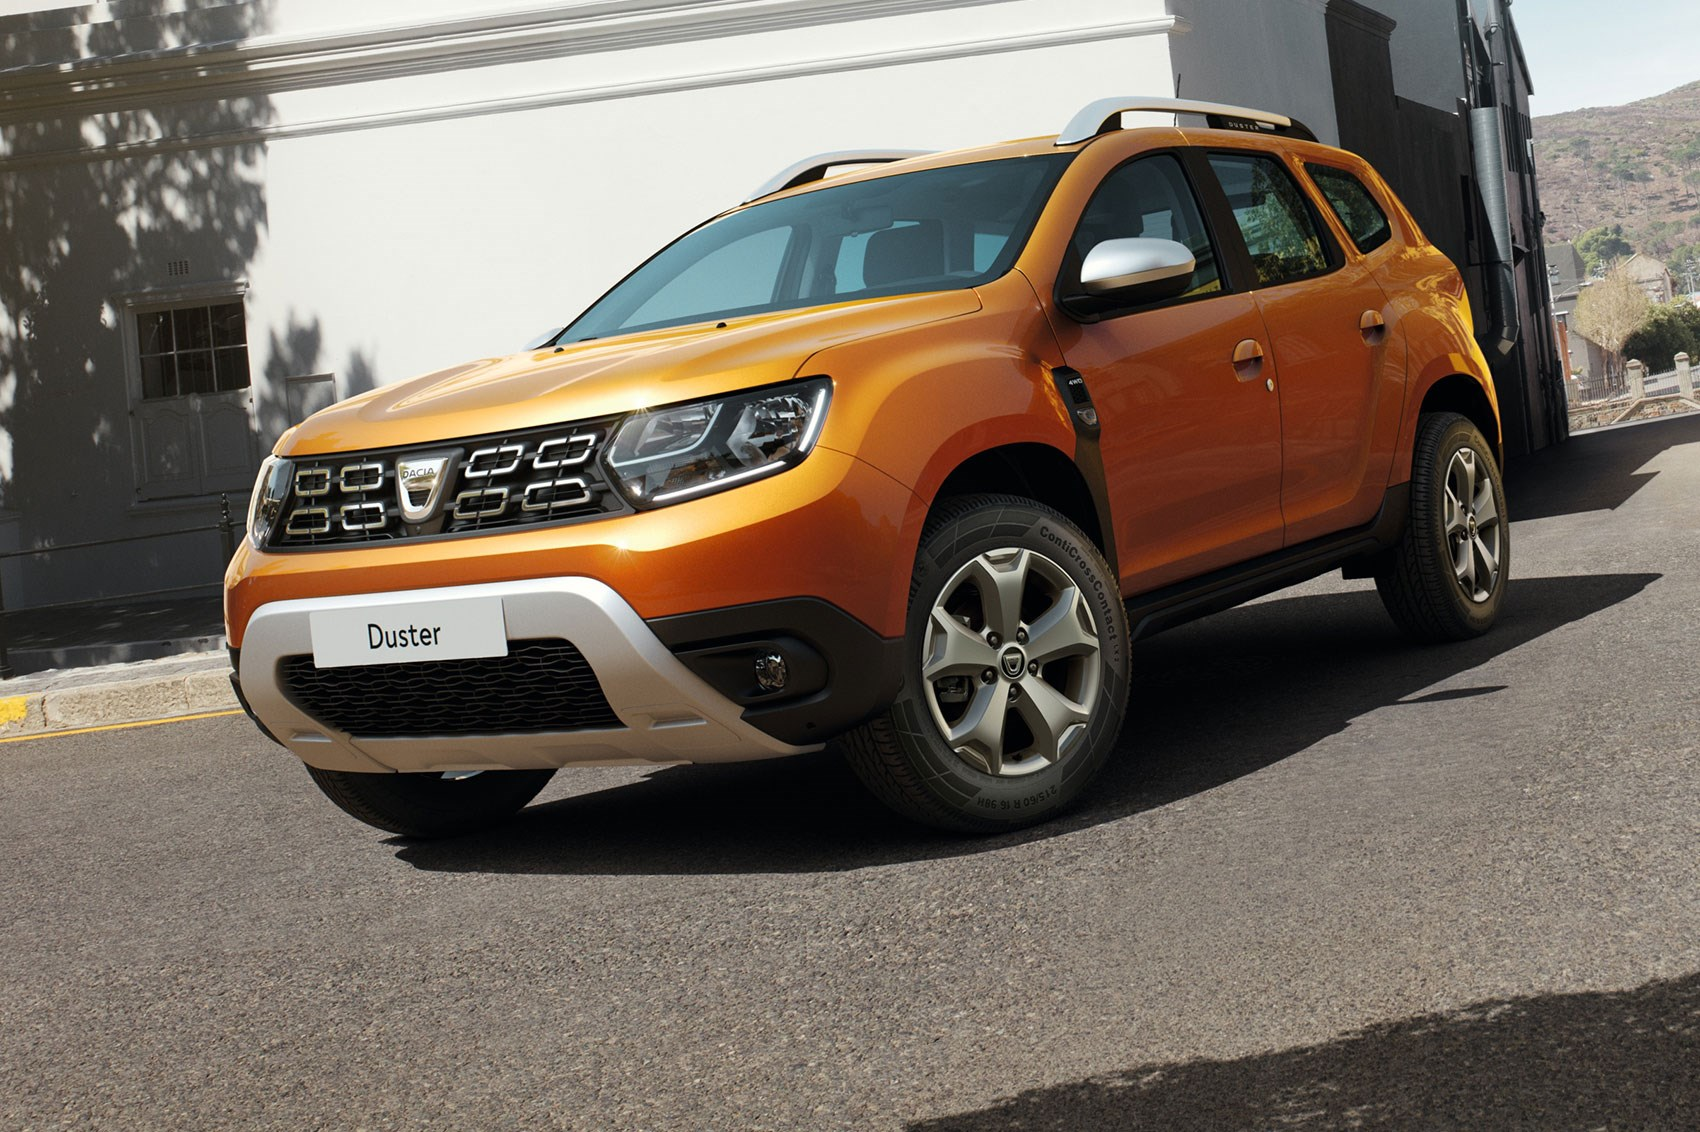 New Dacia Duster 2018 >> New 2018 Dacia Duster revealed: pictures, specs, details | CAR Magazine